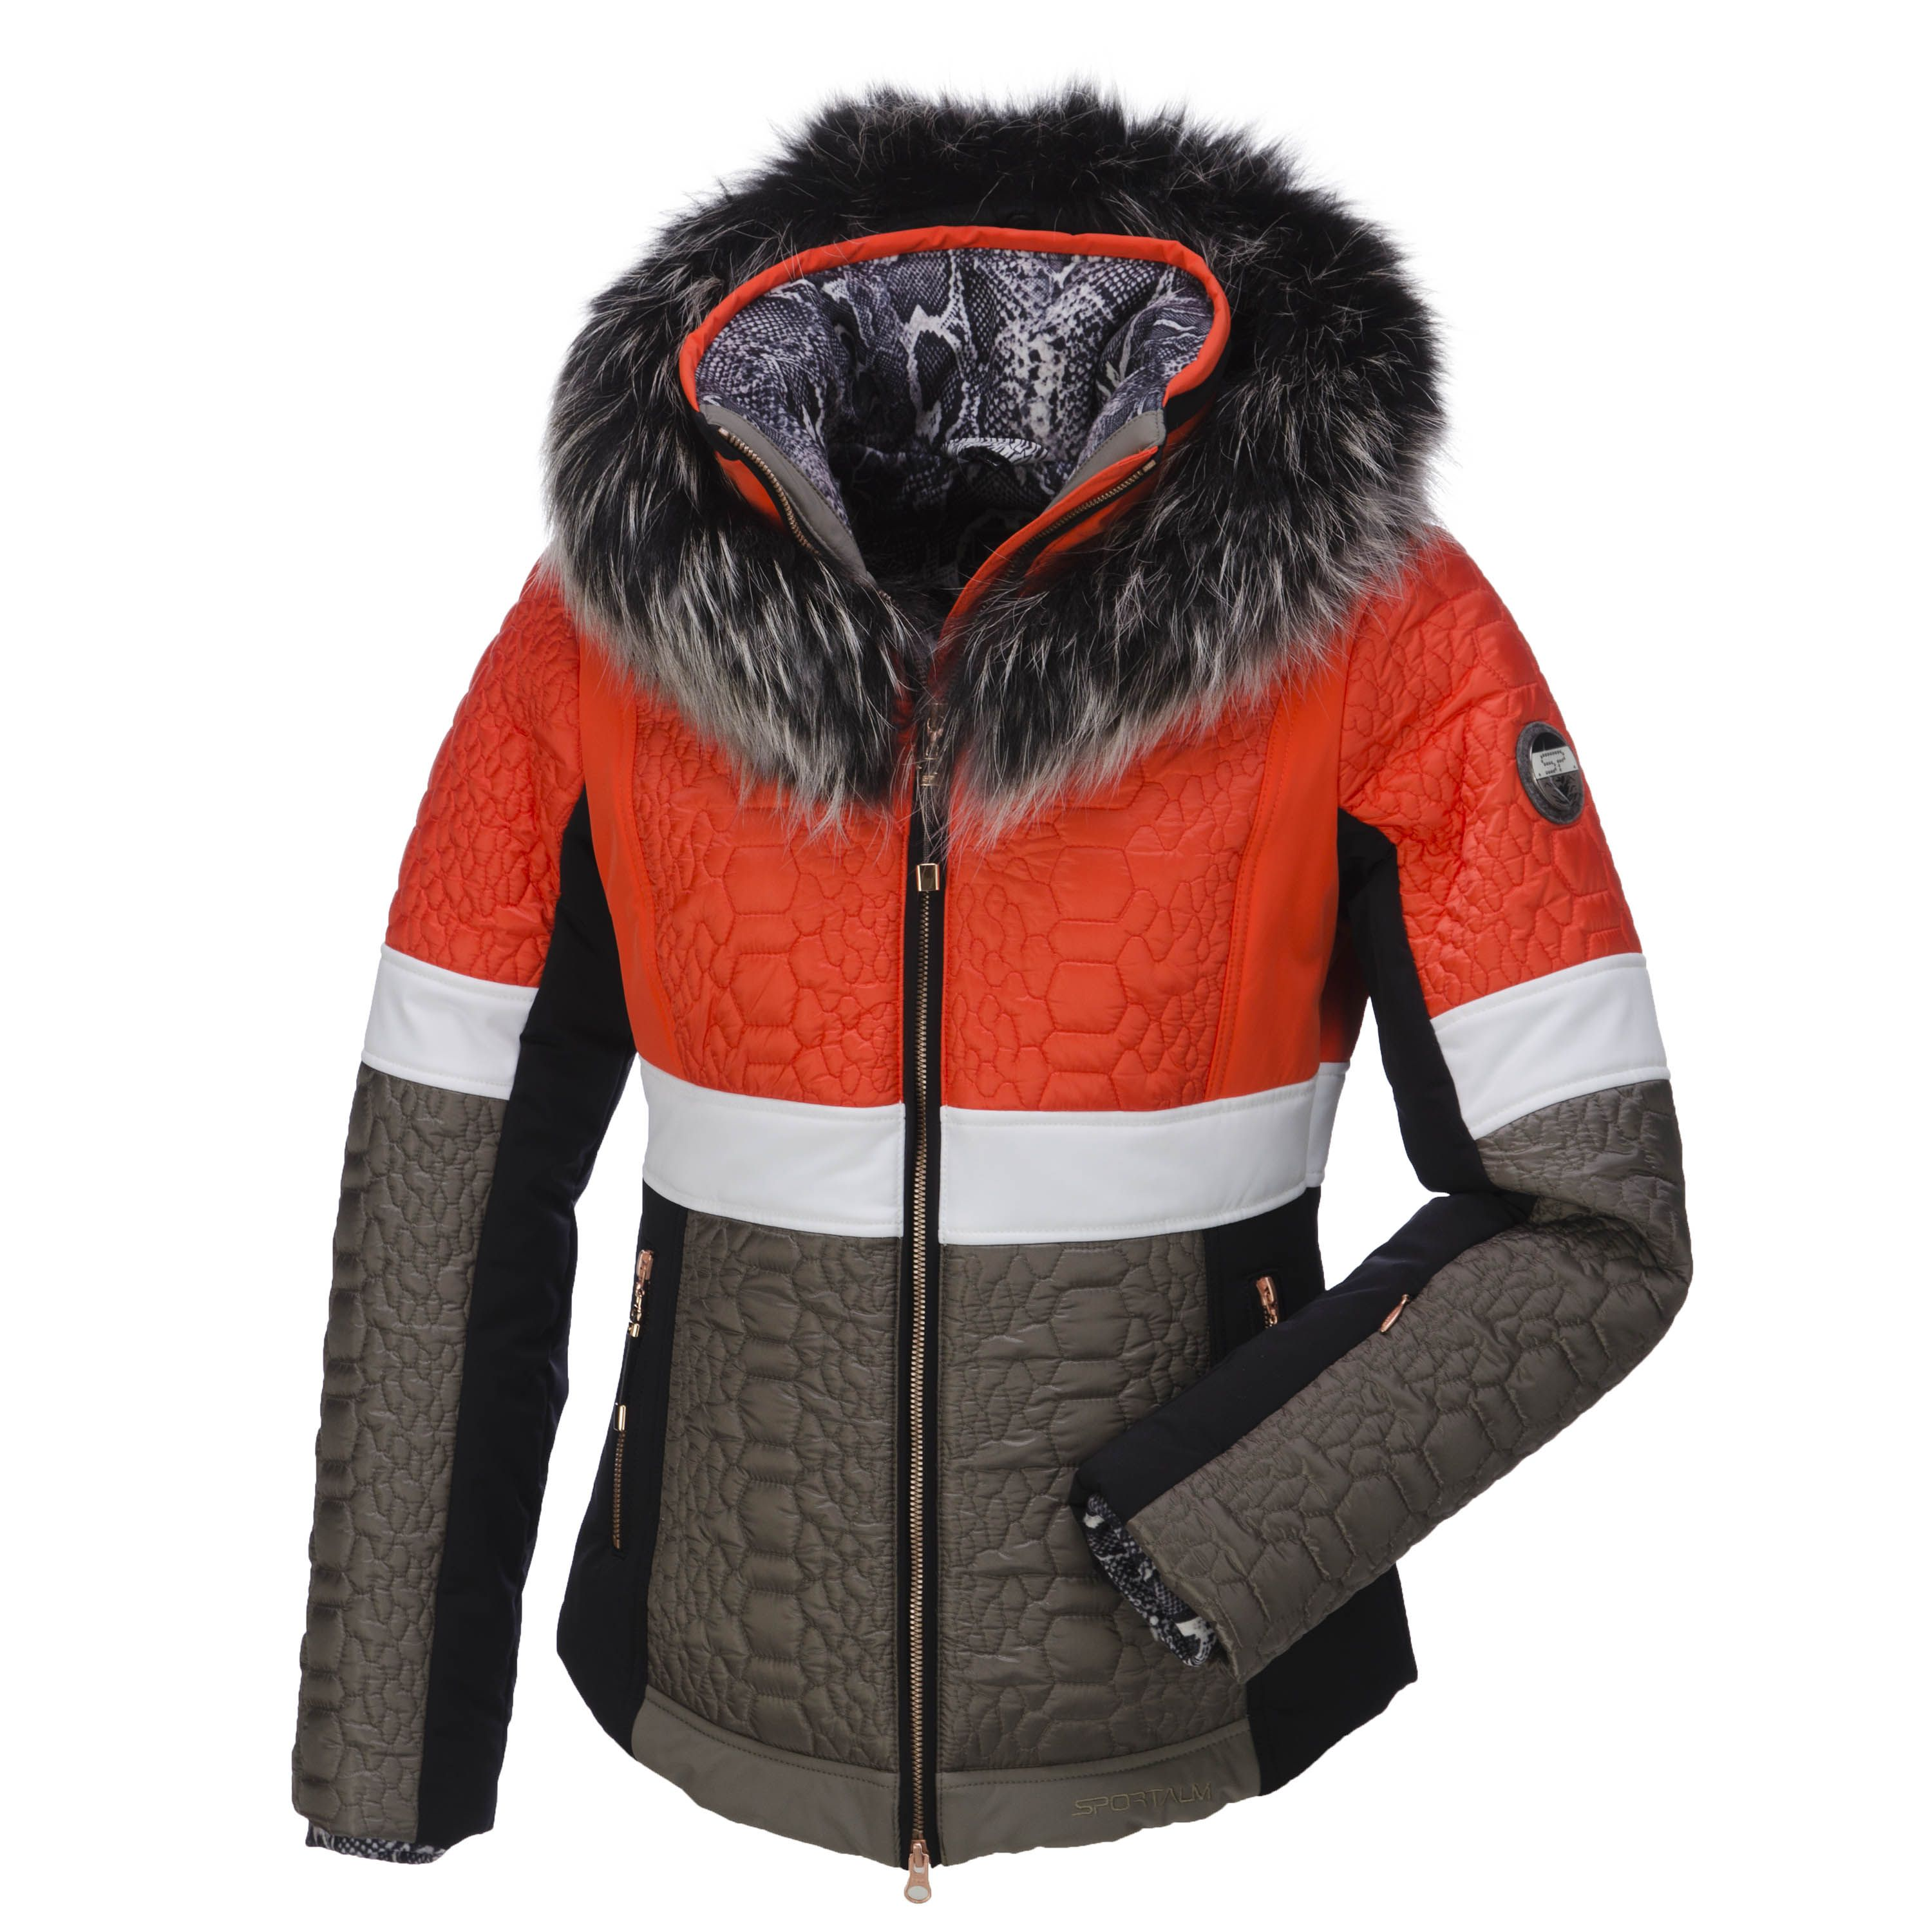 sportalm kitzb hel taha ski jacket with fur collar woman burnt orange posh ski jacket with. Black Bedroom Furniture Sets. Home Design Ideas